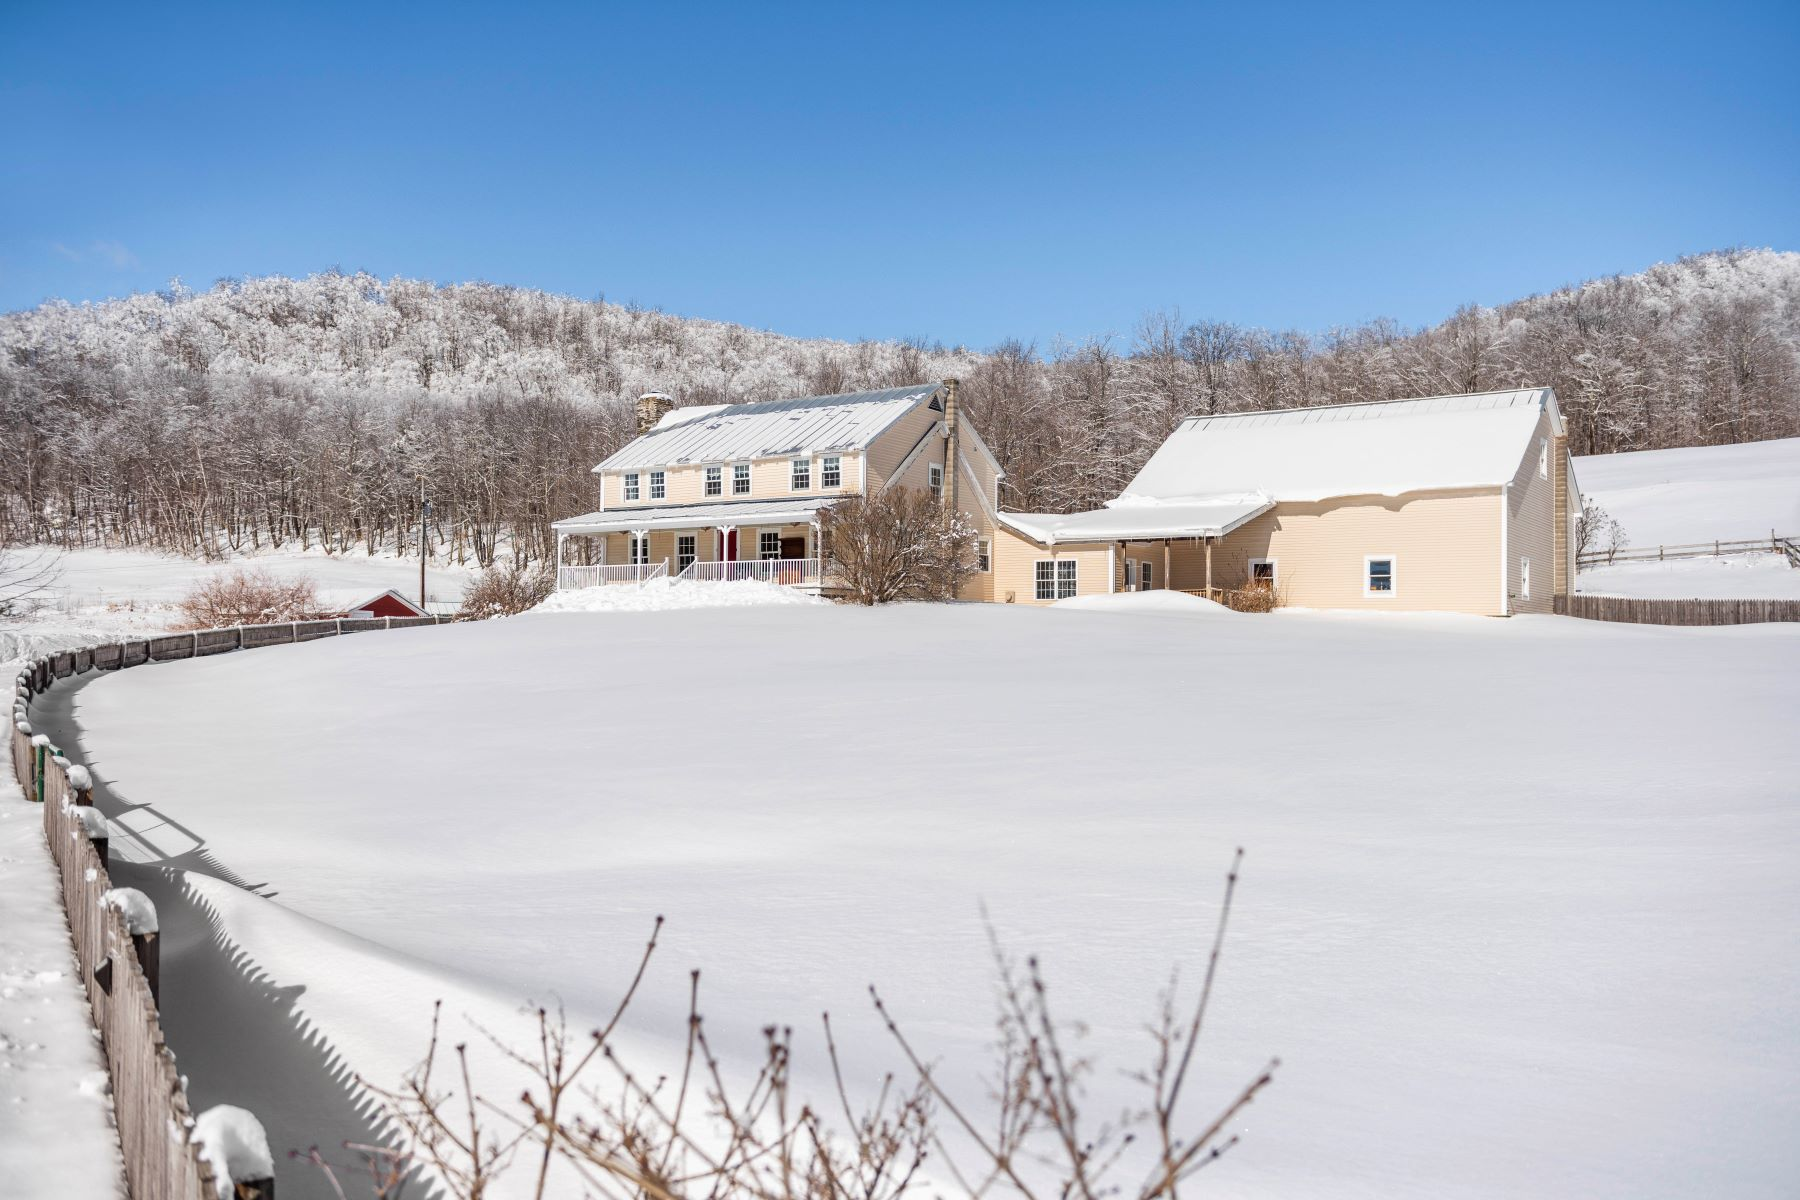 Single Family Homes for Sale at 123 Brocklebank Road, Tunbridge 123 Brocklebank Rd Tunbridge, Vermont 05077 United States